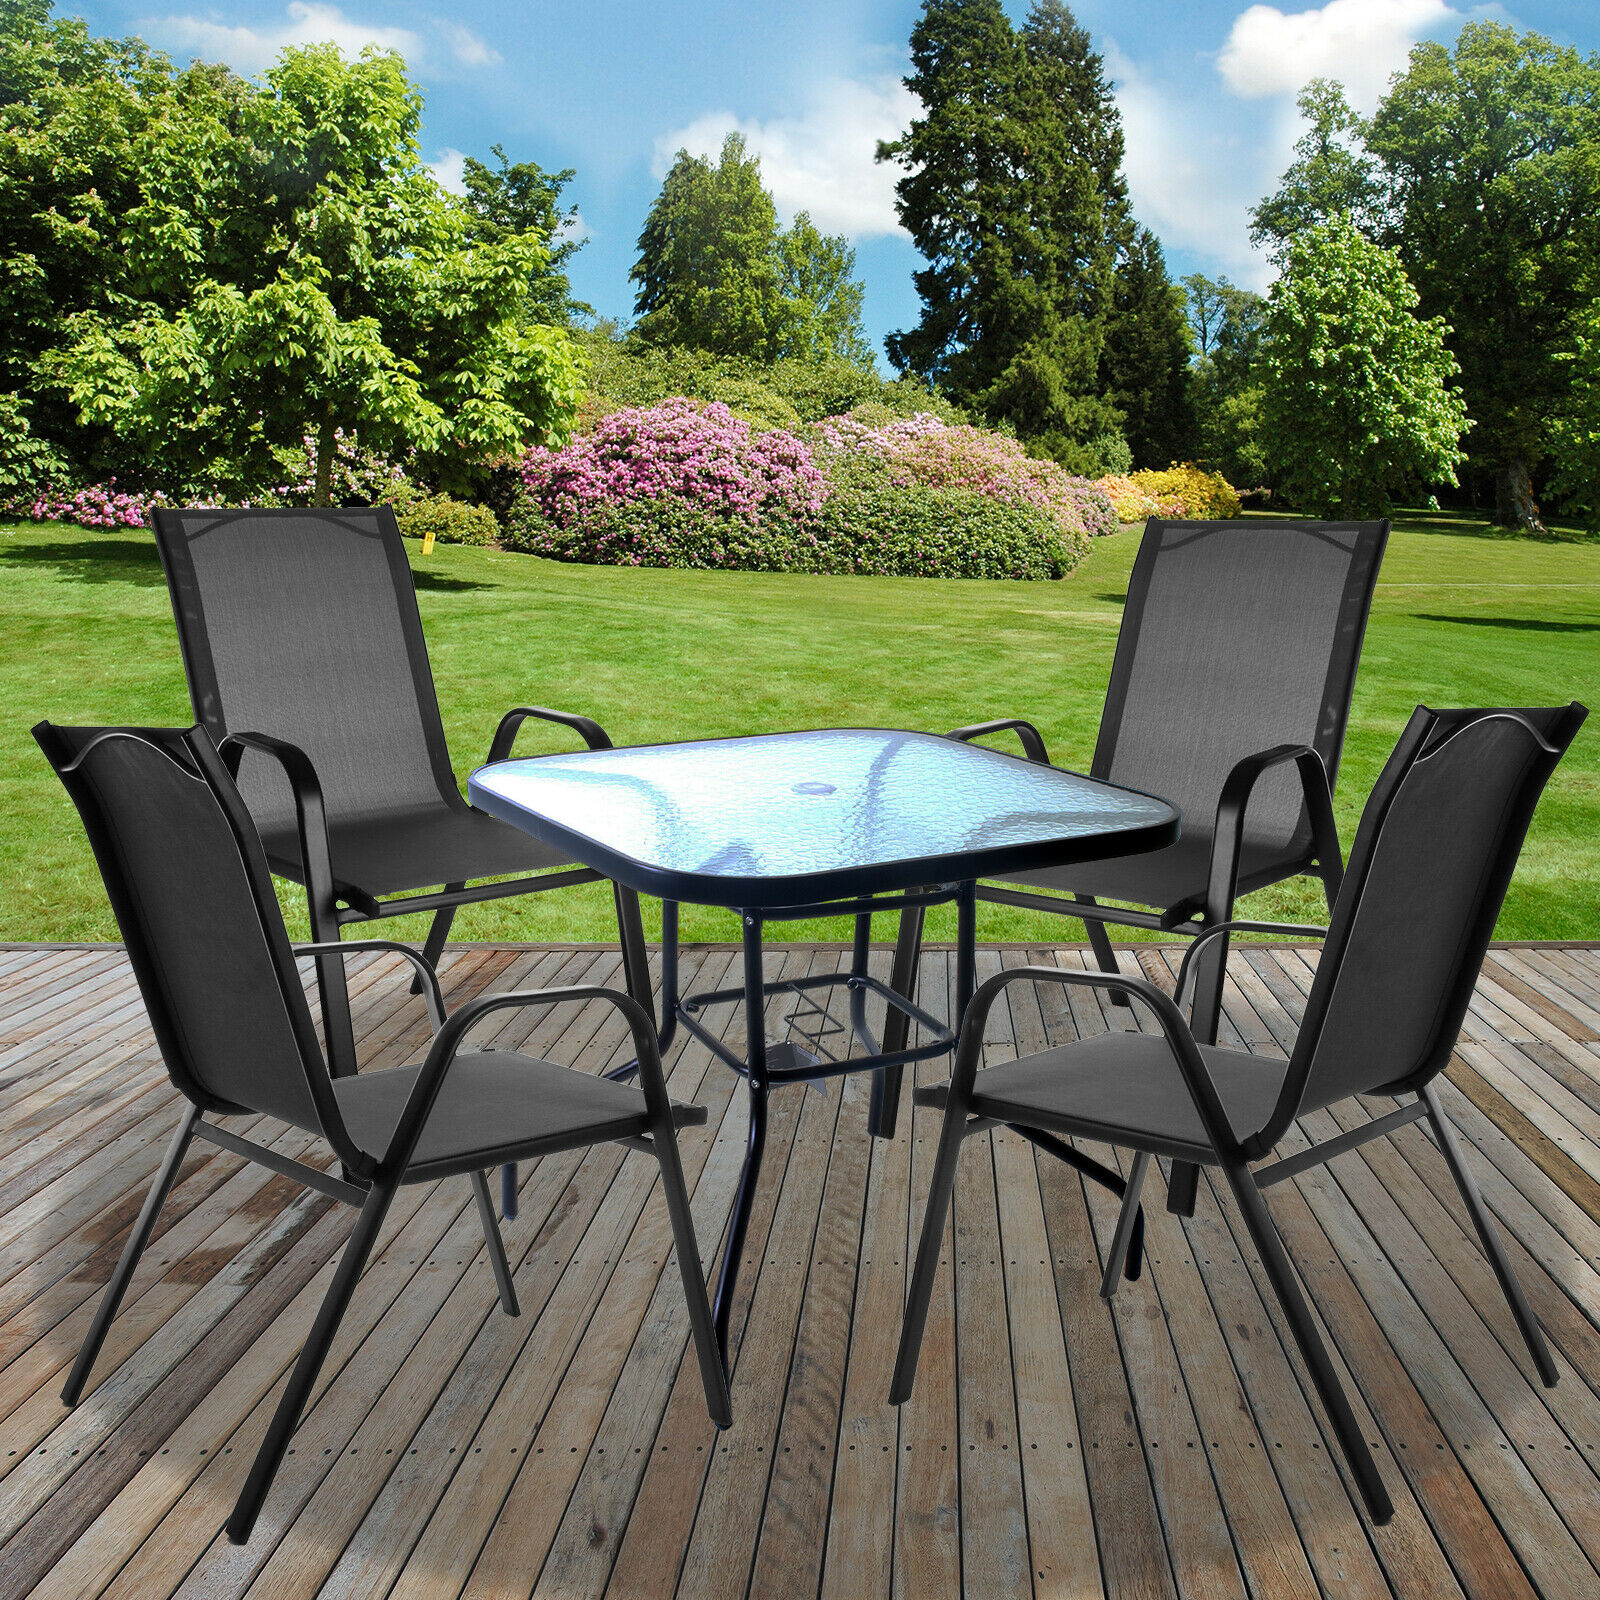 Garden Furniture - GARDEN FURNITURE SETS OUTDOOR PATIO SEATS GLASS TABLES & STACKING CHAIRS PARASOL